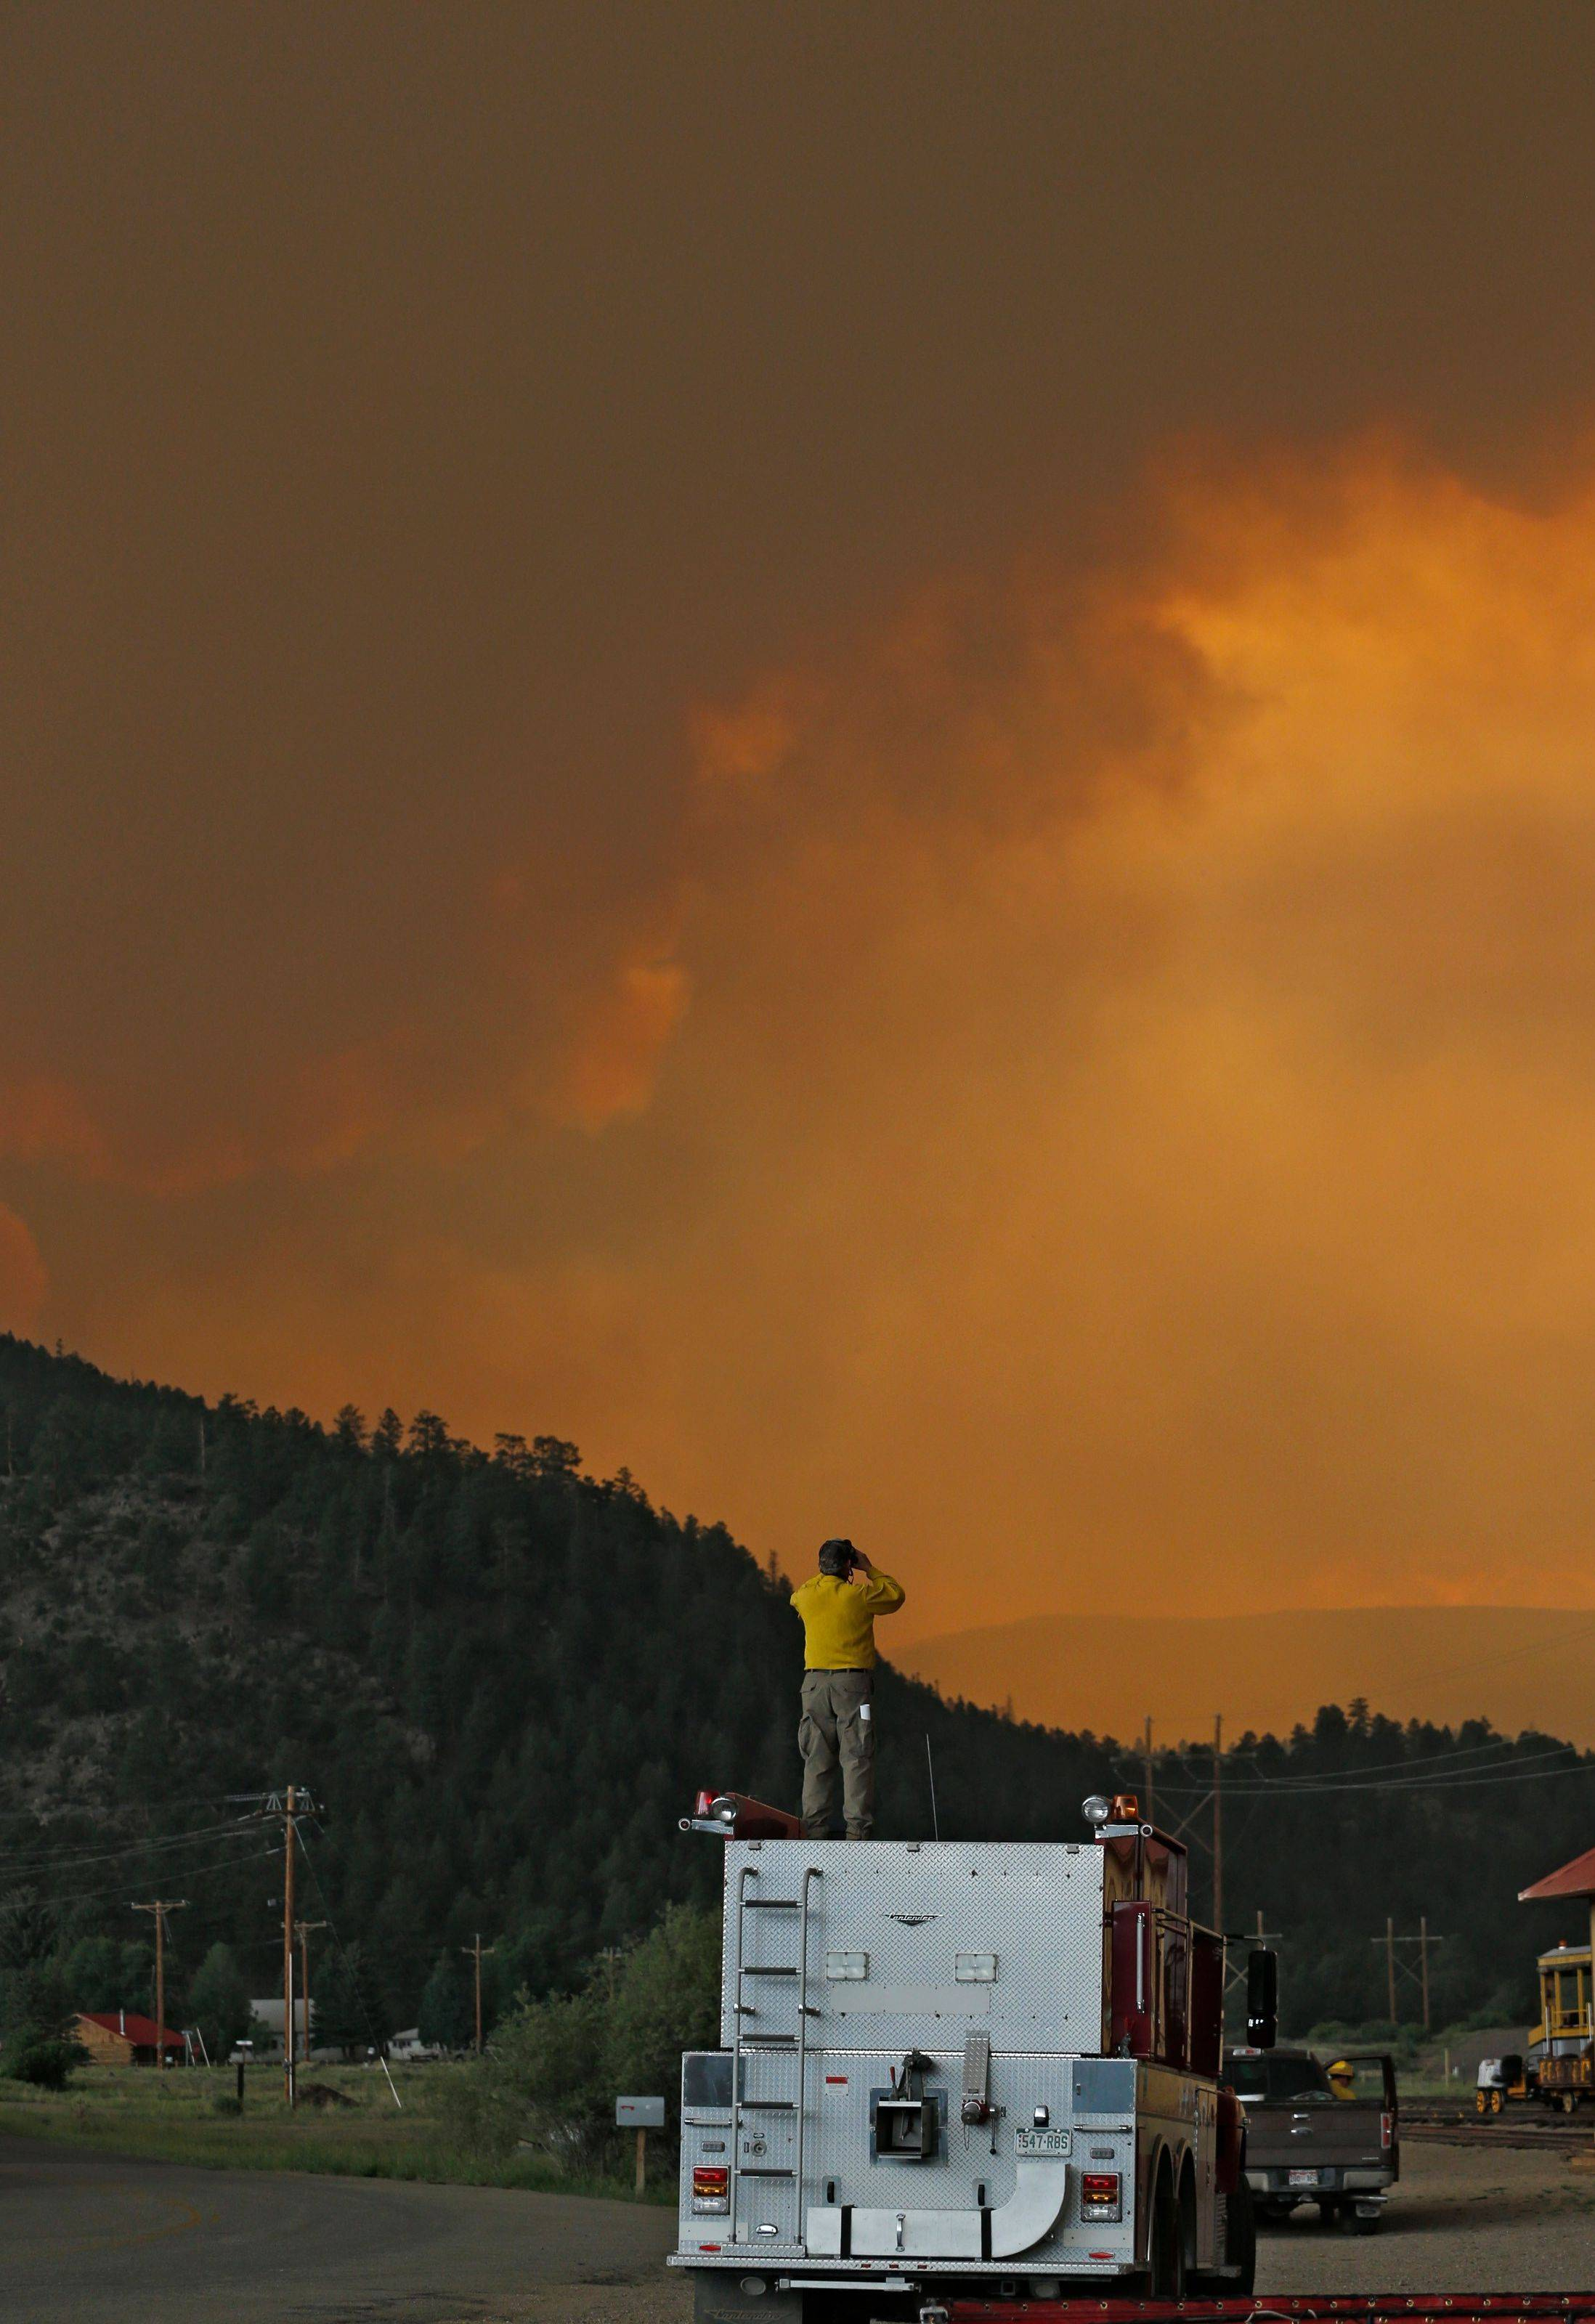 A firefighter stands on top of a firetruck Friday evening in South Fork, Colo., as he monitors a wildfire that burns west of town. The town was evacuated and U.S. 160 that passes through it was closed.